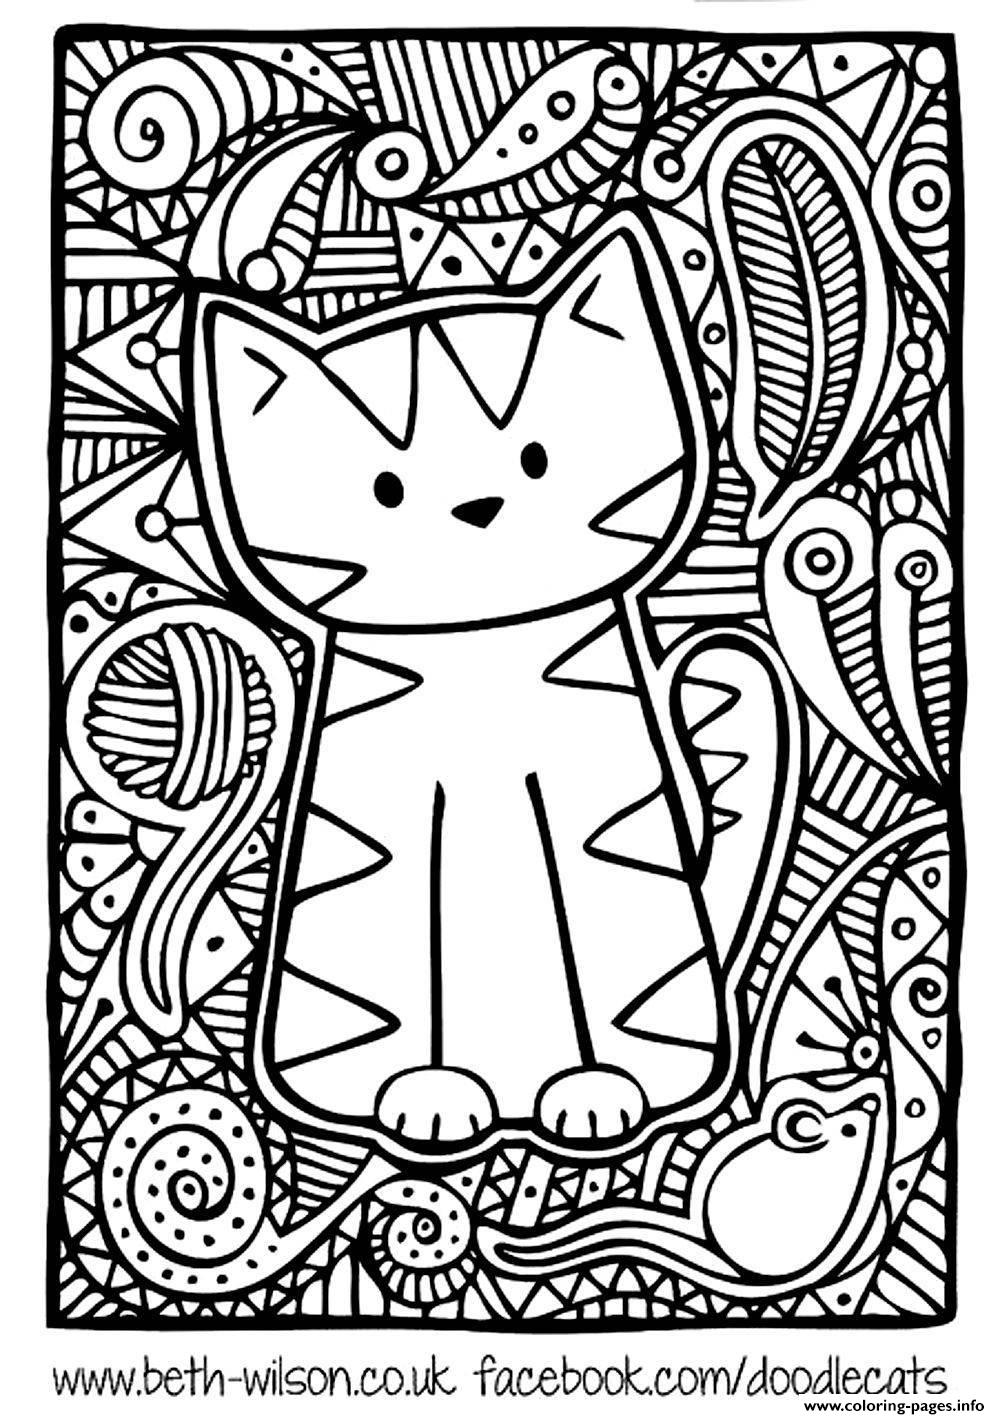 hard cat design coloring pages - photo#26